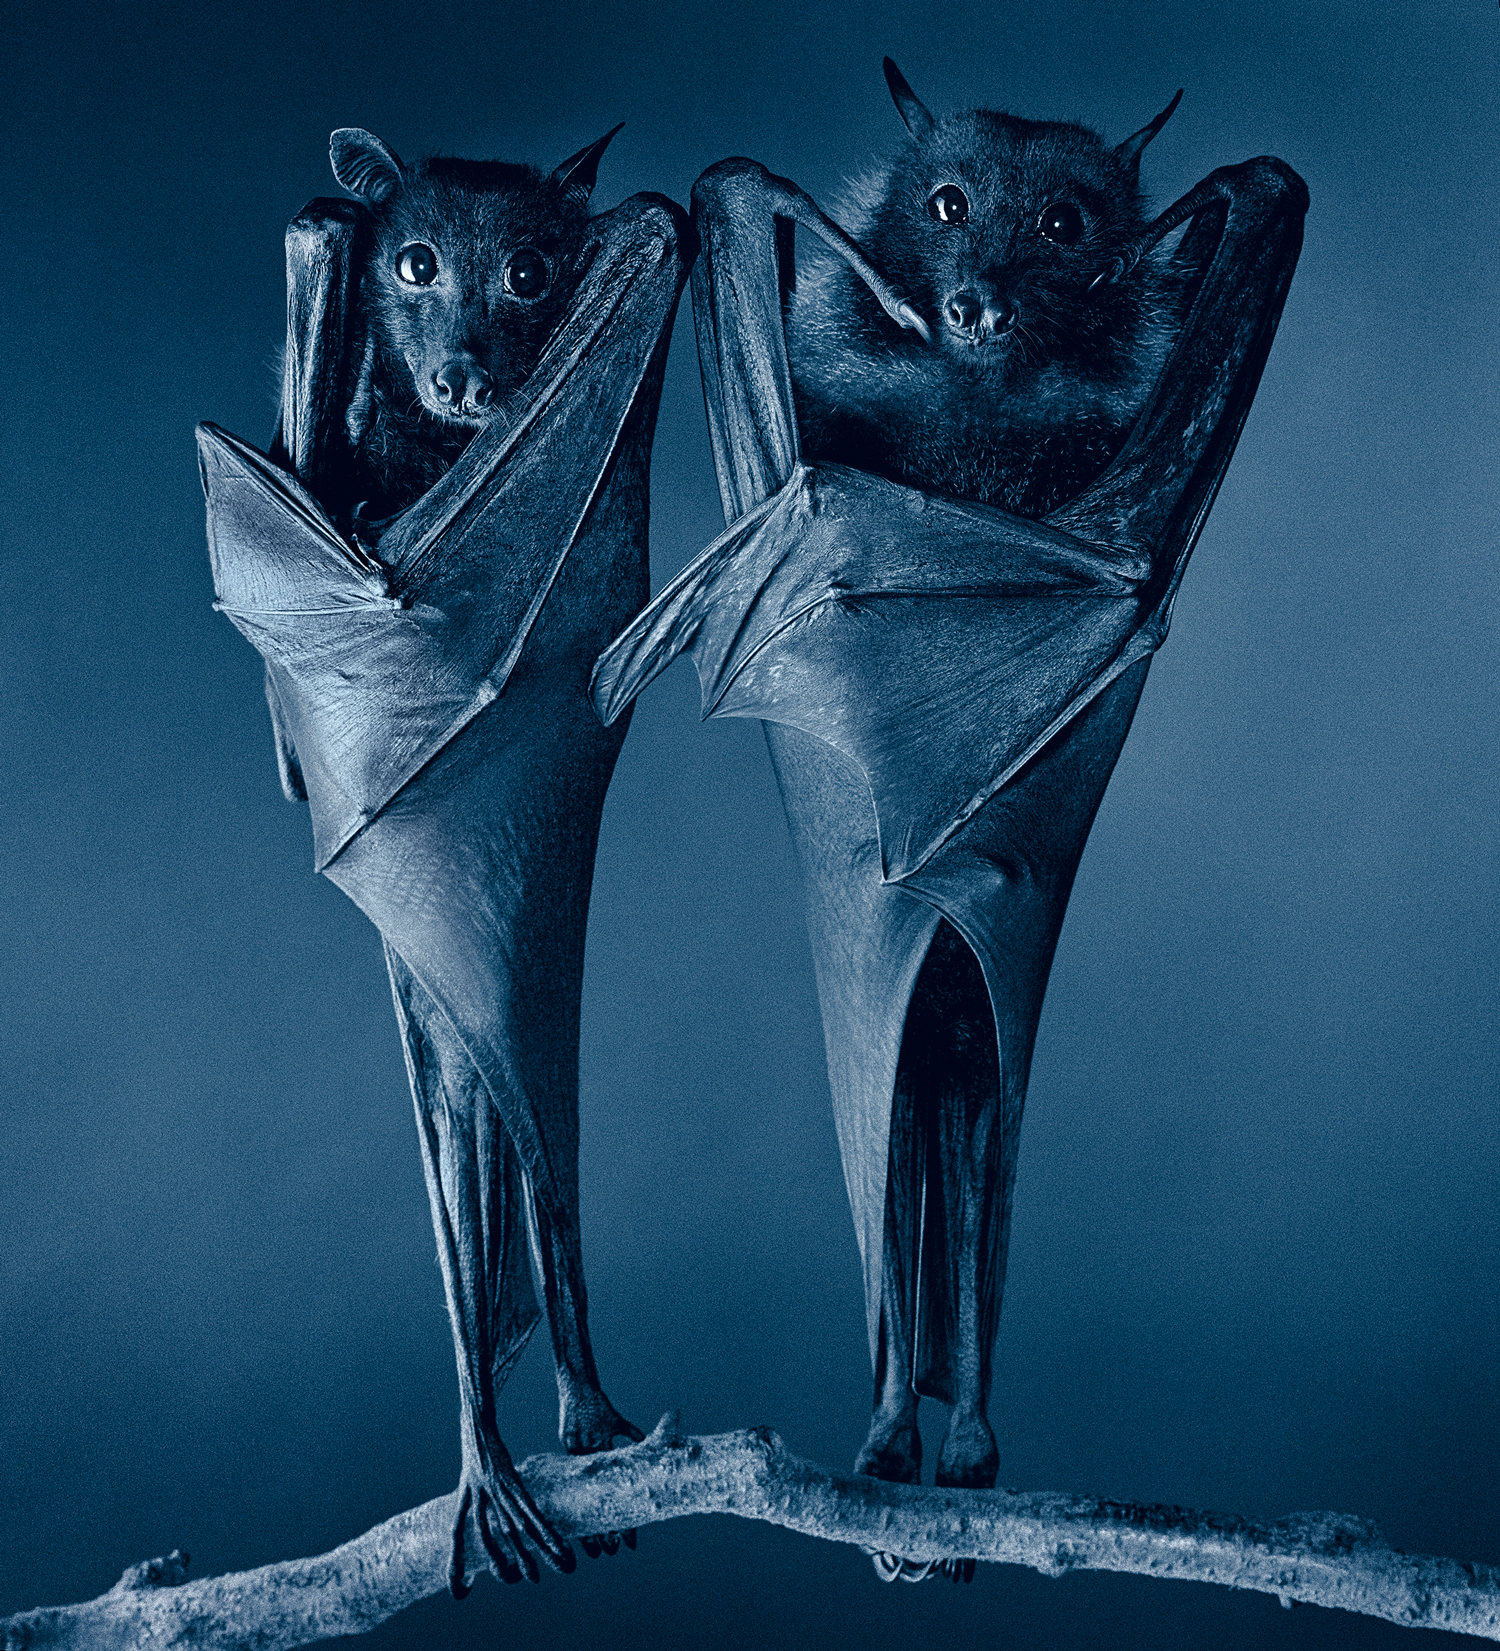 Egyptian Bats 2000 © Tim Flach